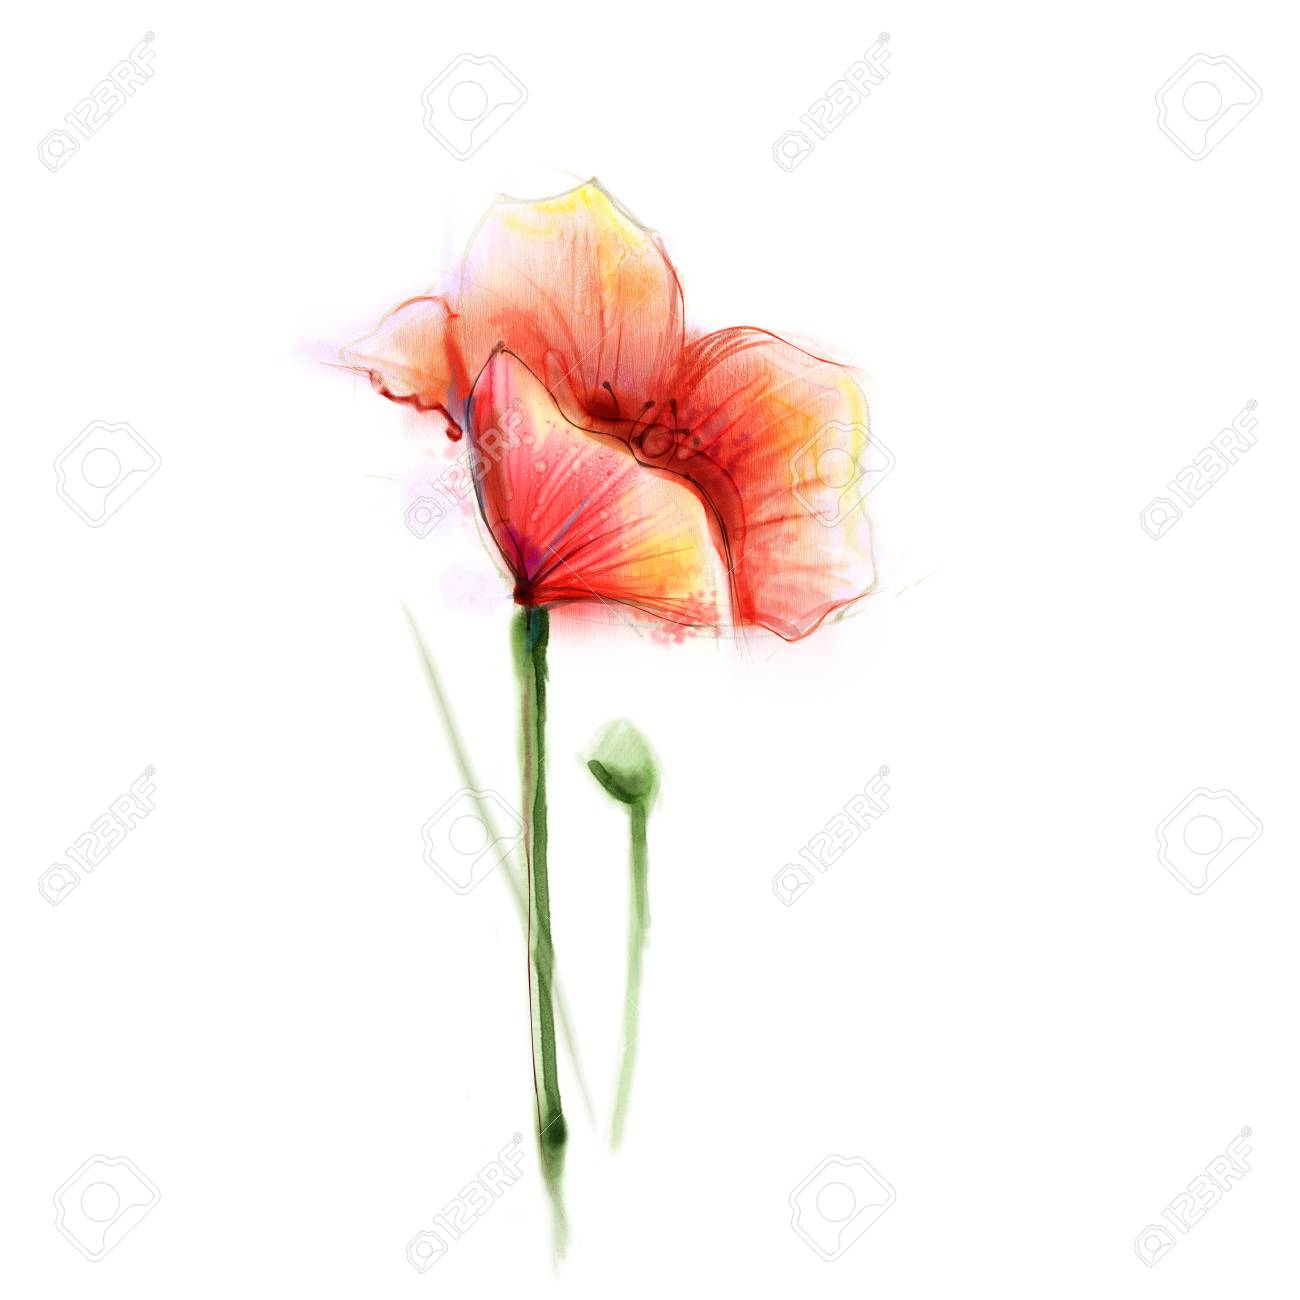 Watercolor Painting Poppy Flower Isolated Flower On White